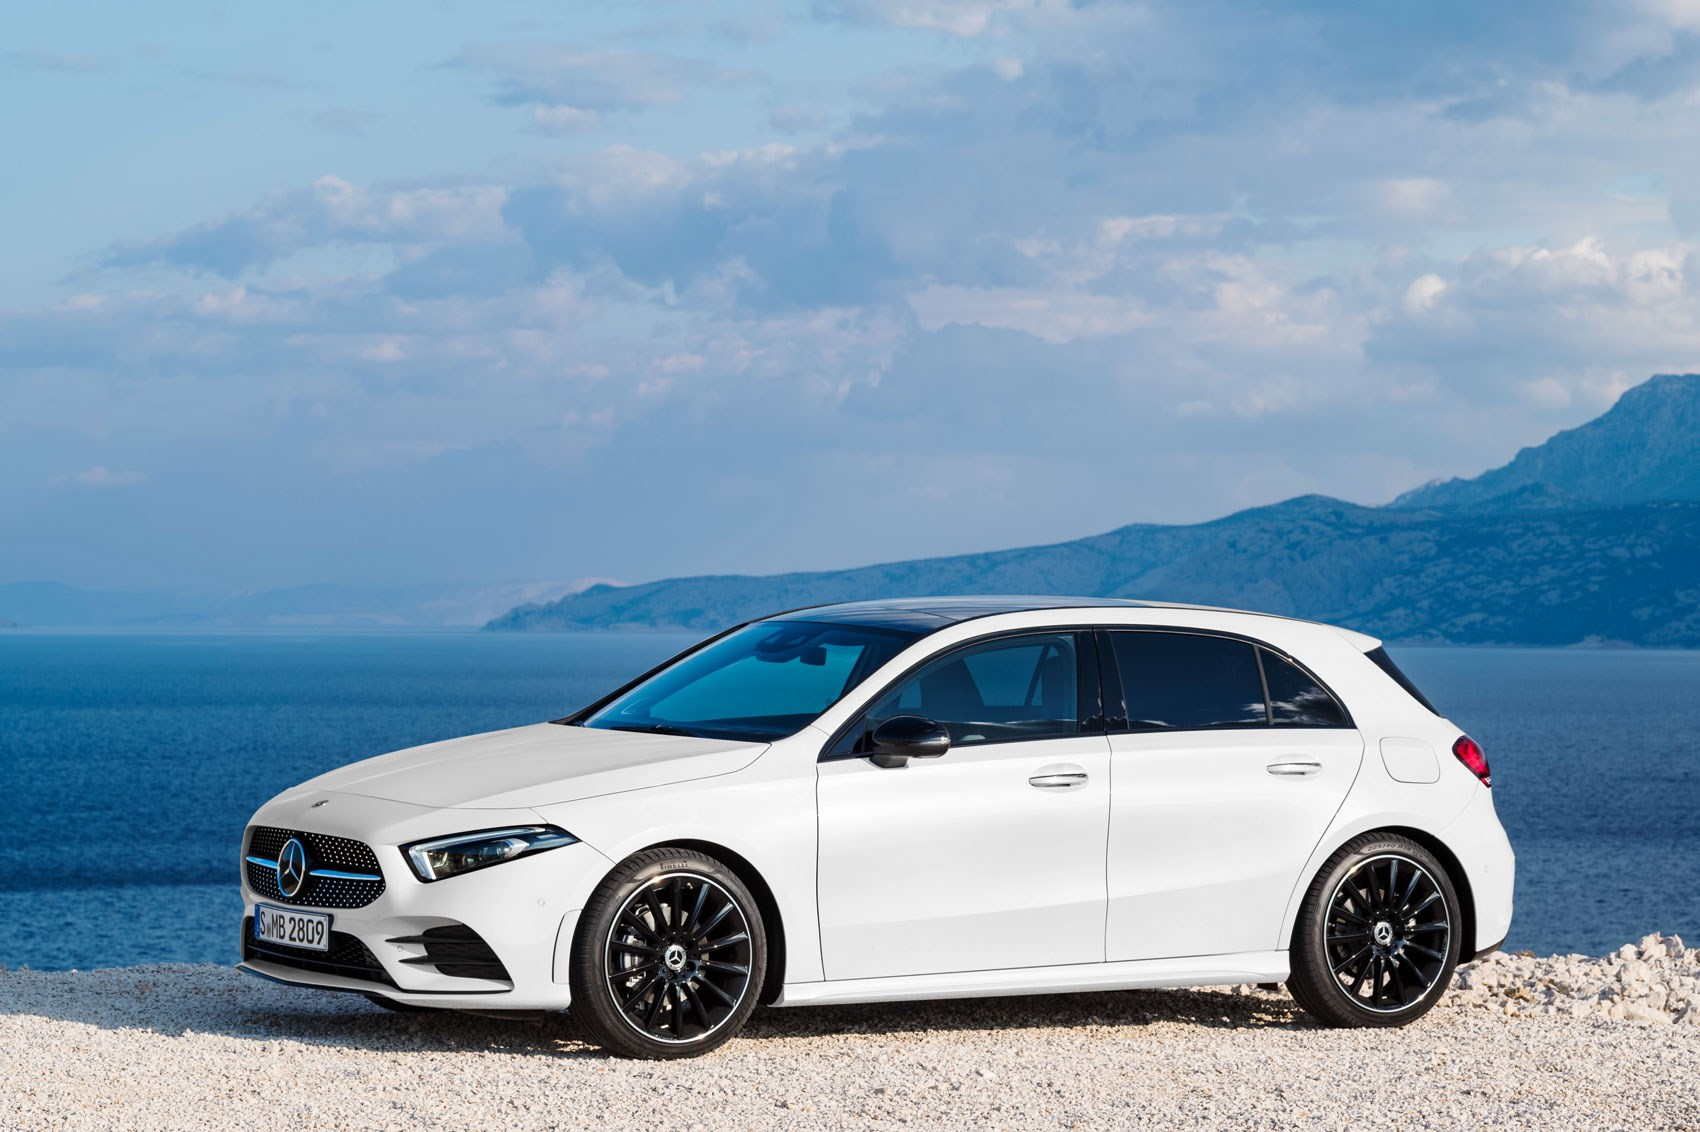 new mercedes a class 2018 39 l 39 saloon revealed in china by car magazine. Black Bedroom Furniture Sets. Home Design Ideas